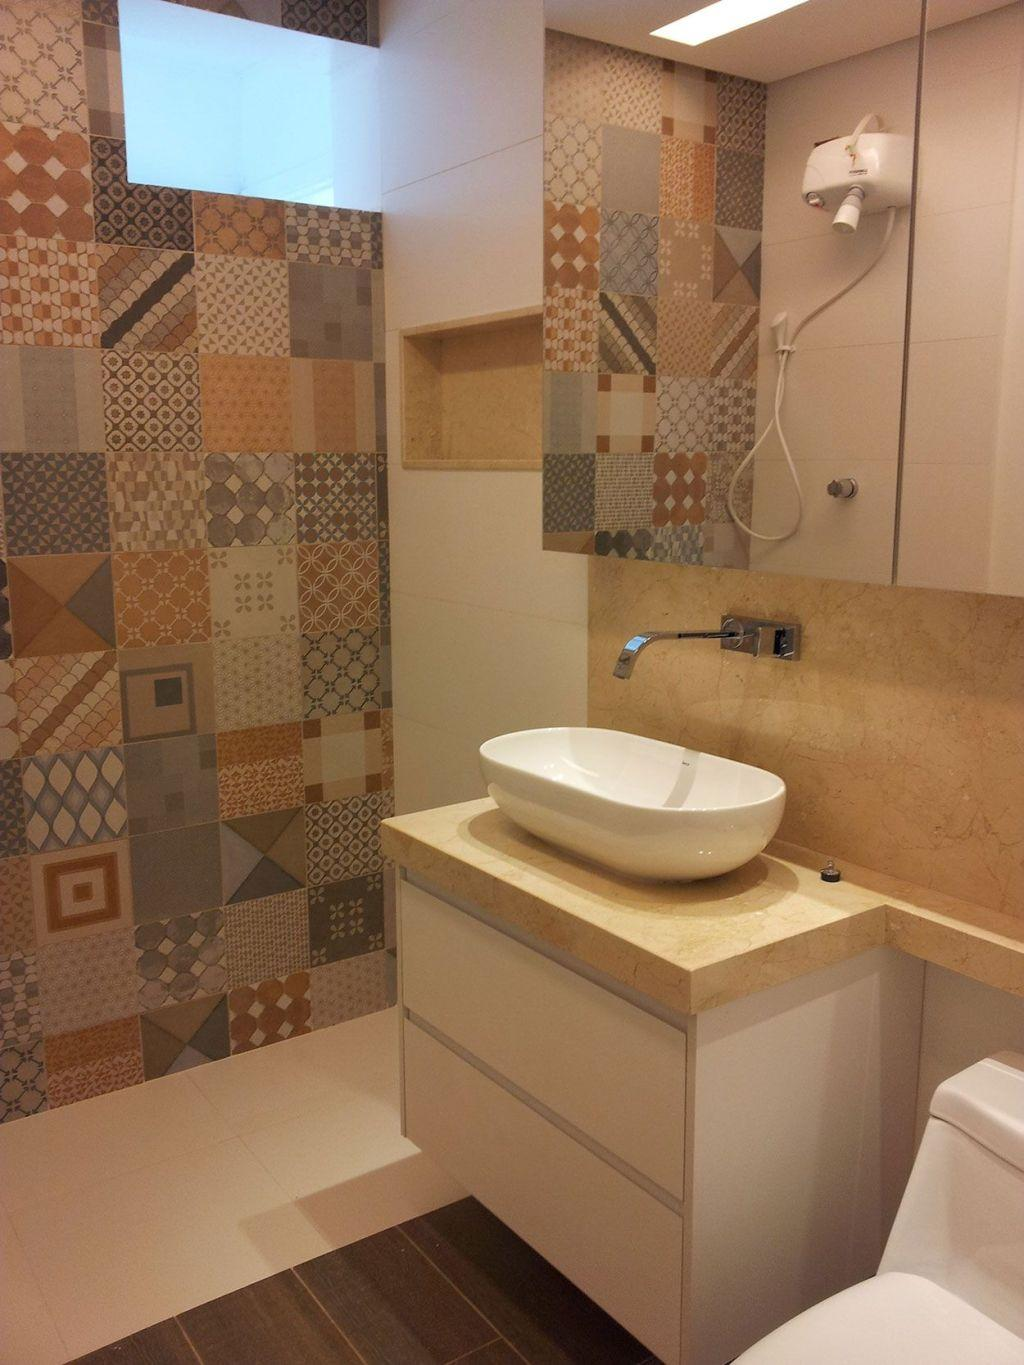 Bathroom coatings: types, models and photos 23